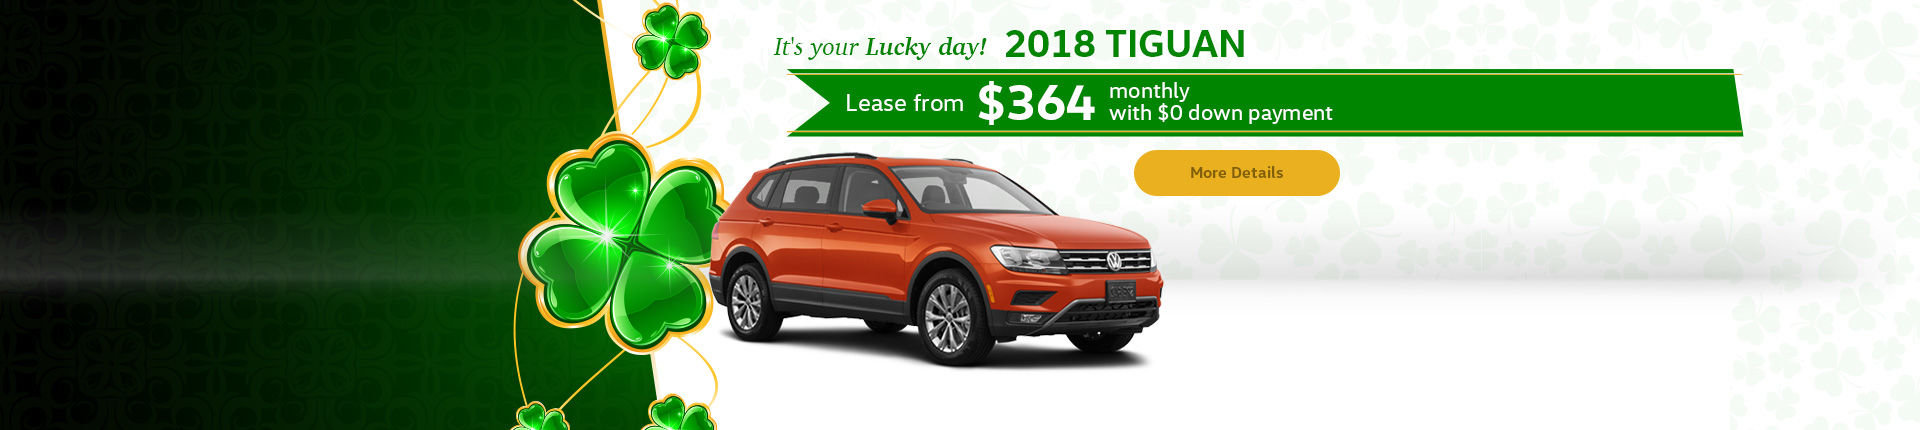 It's your Lucky day! 2018 Tiguan